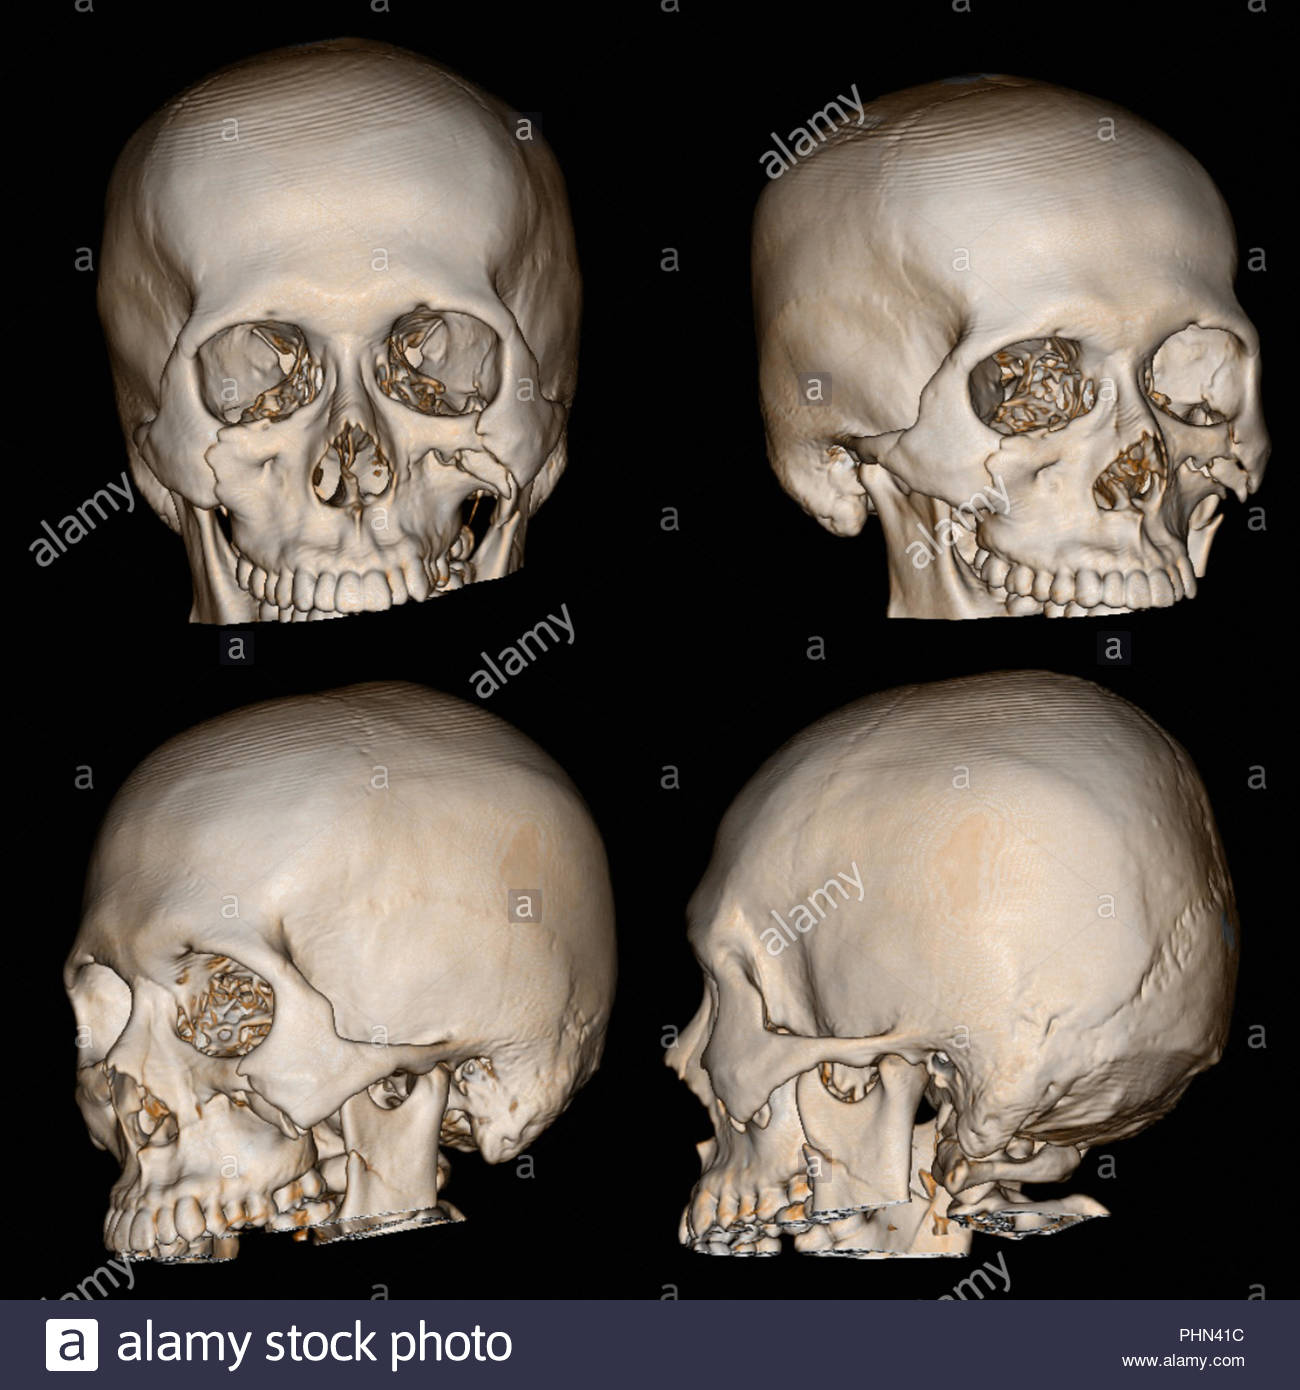 3-D rendering image of a patient skull with traumatic brain injury showing compression or depression, fracture of both orbital rim and left zygomatic  - Stock Image